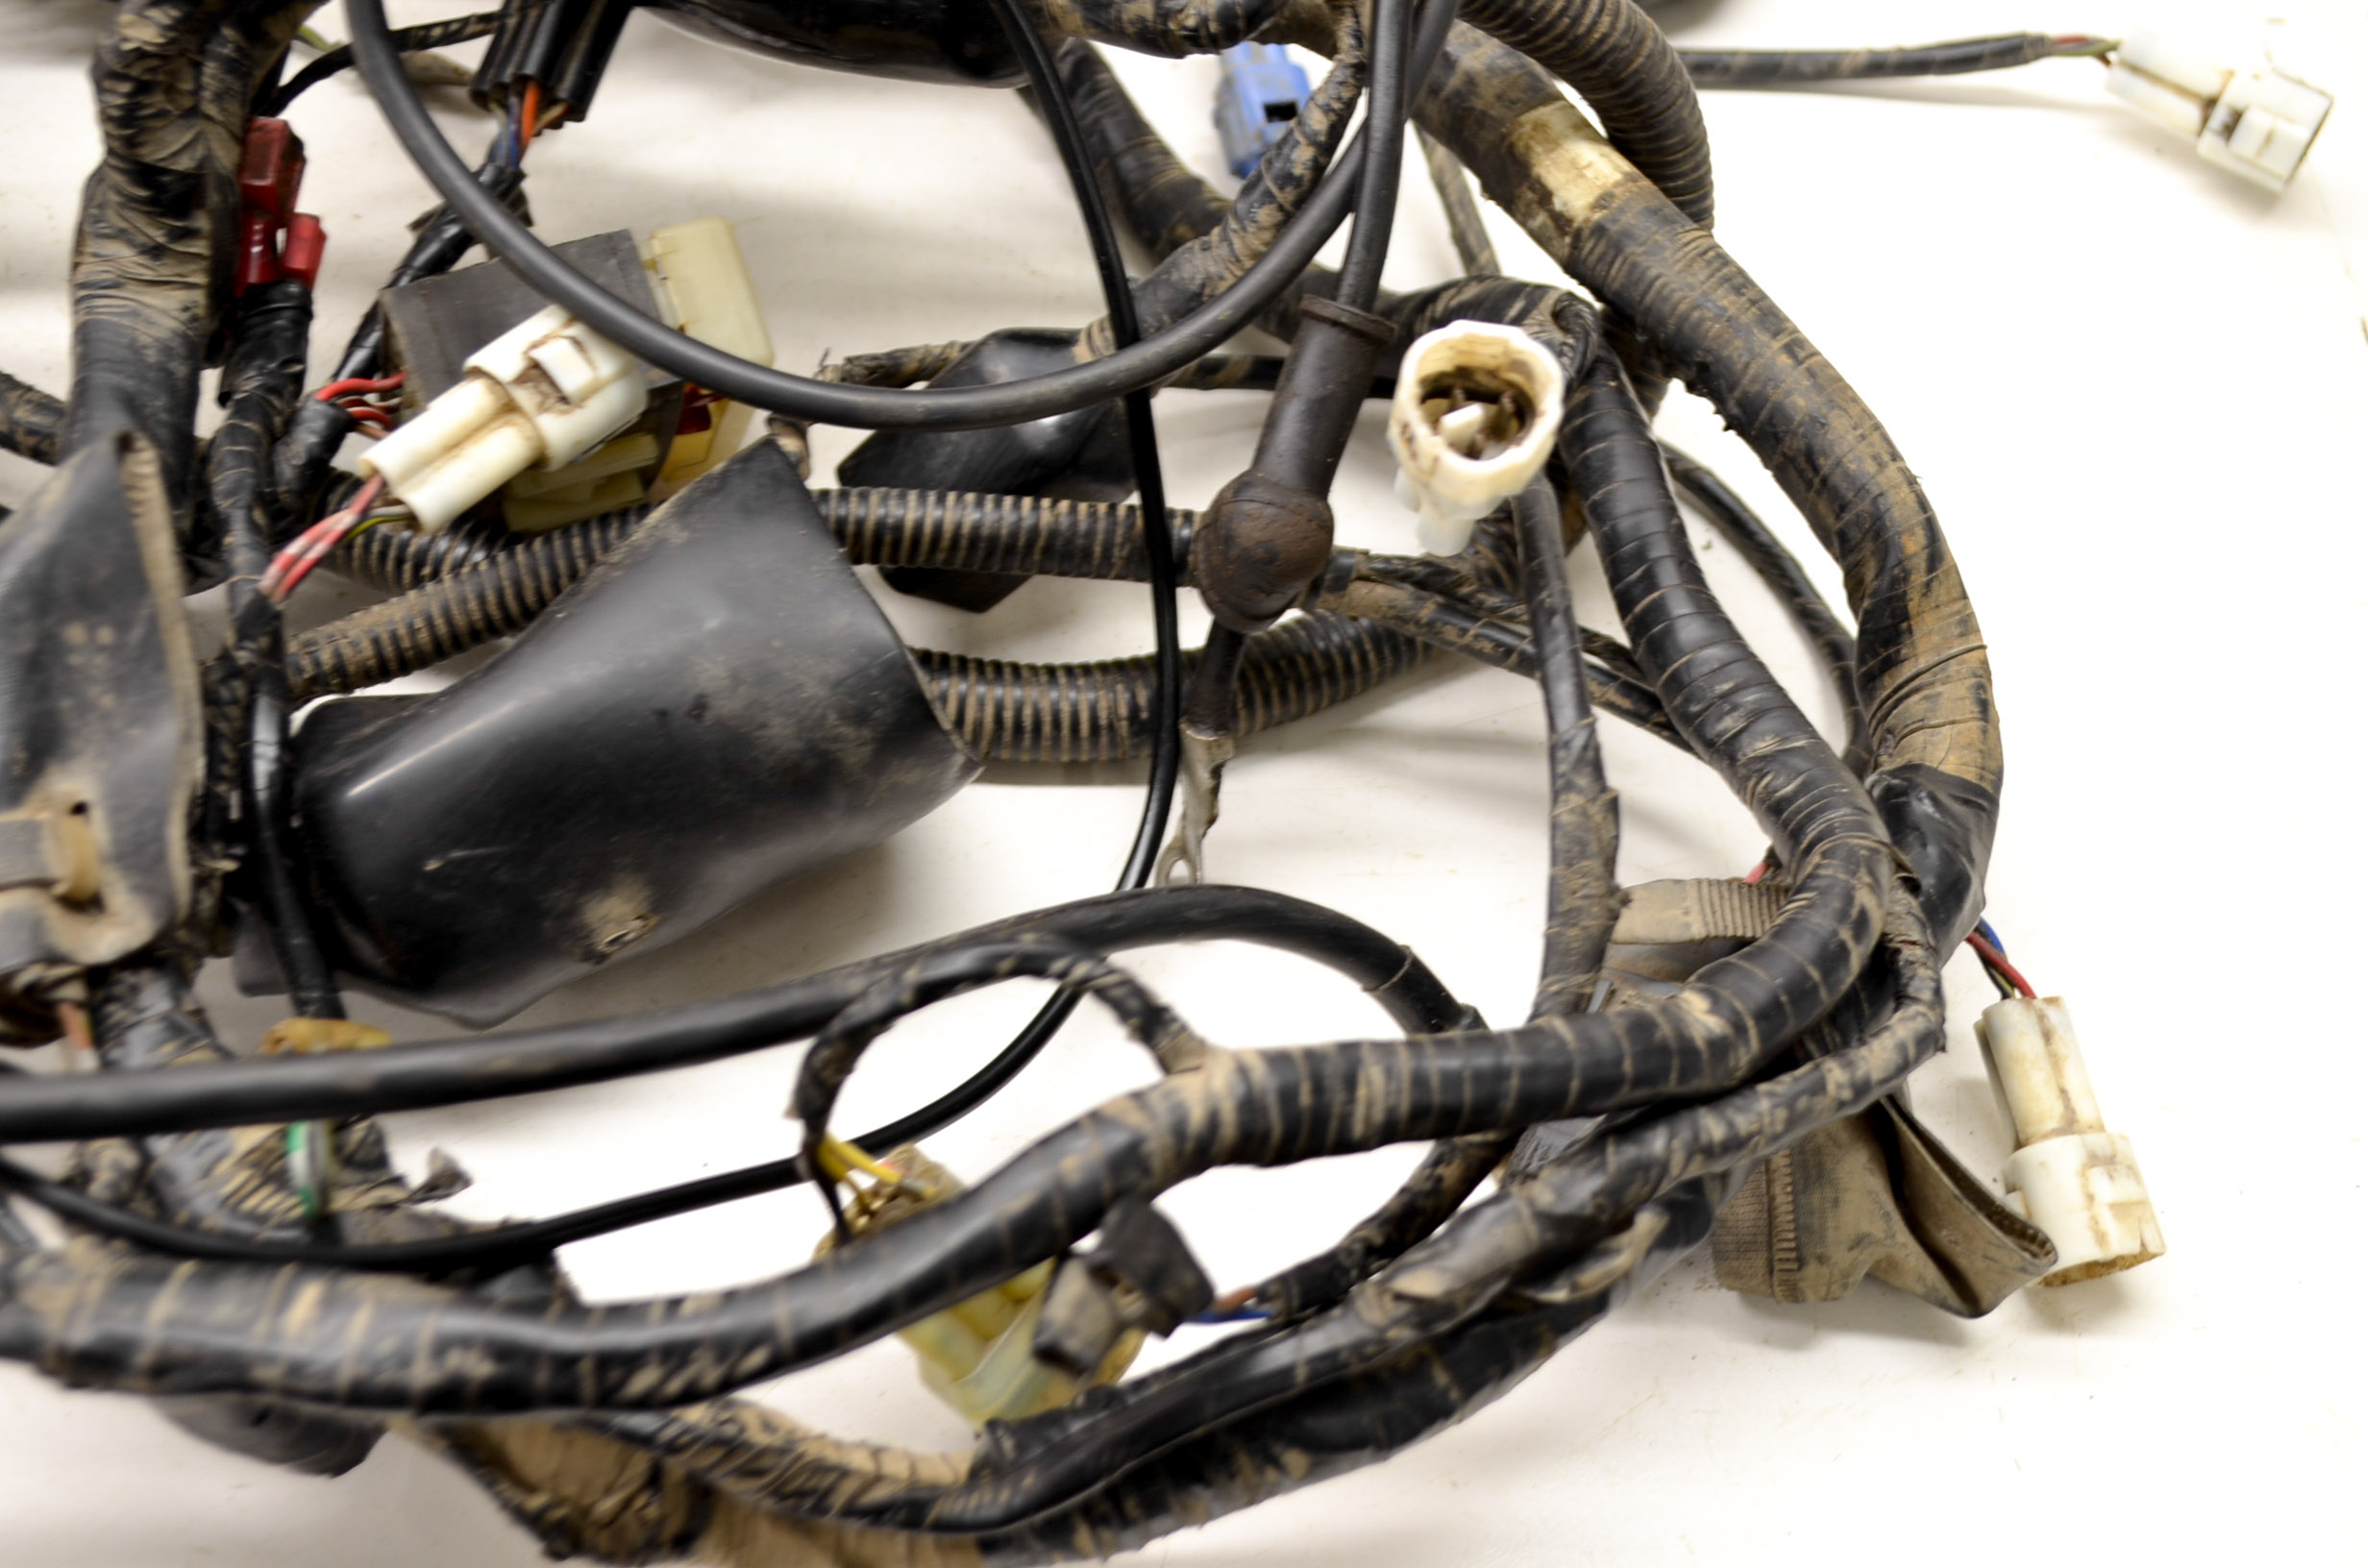 08 Kawasaki Brute Force 650 Wire Harness Electrical Wiring KVF650 4x4